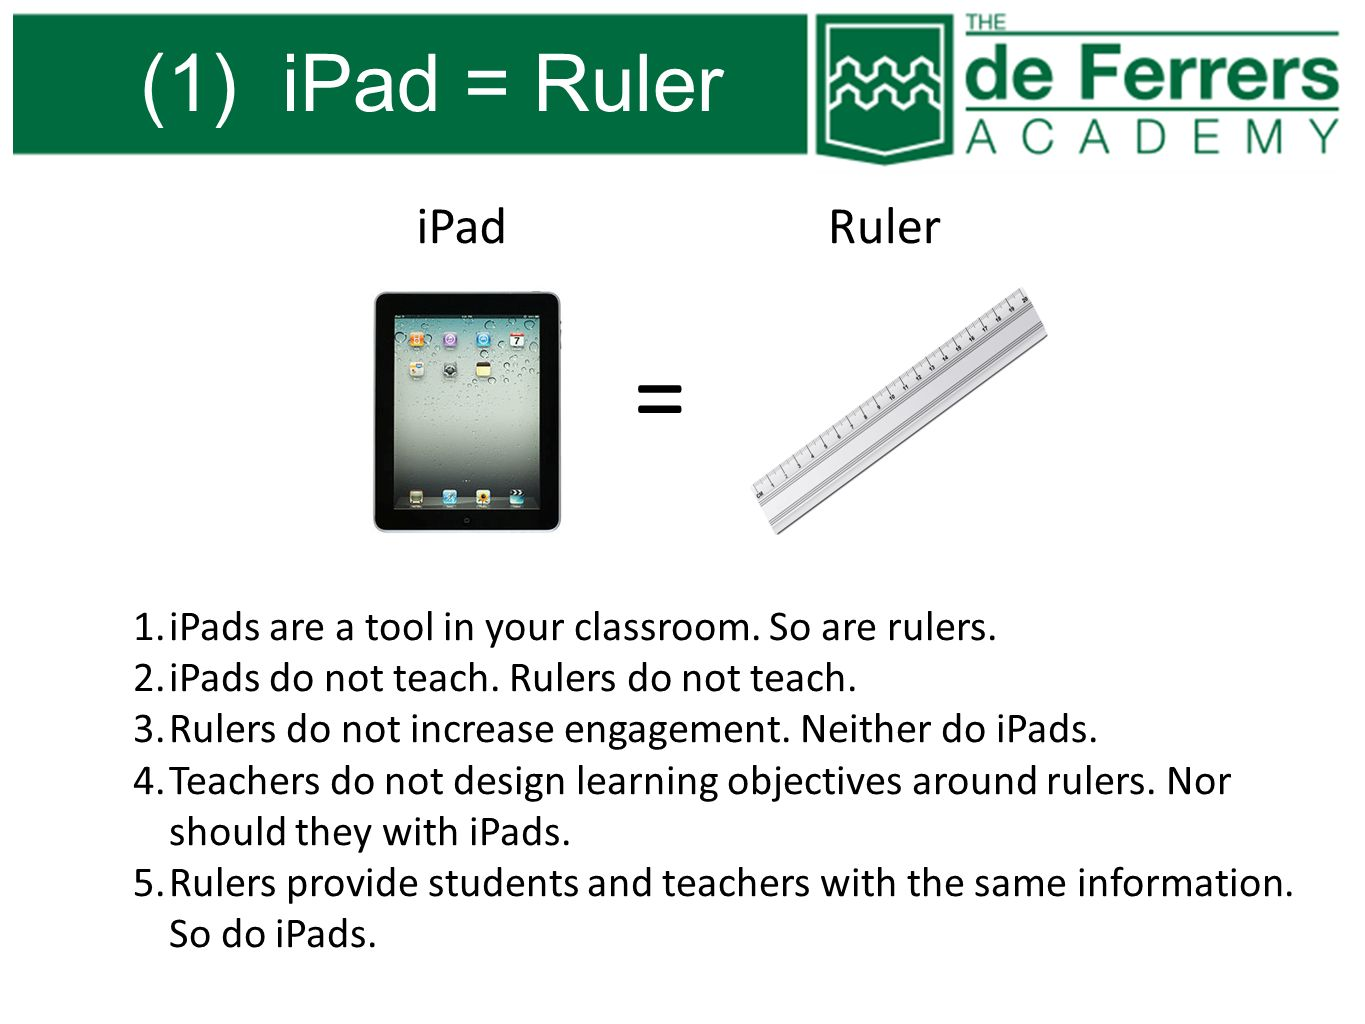 (1) iPad = Ruler = iPadRuler 1.iPads are a tool in your classroom. So are rulers. 2.iPads do not teach. Rulers do not teach. 3.Rulers do not increase